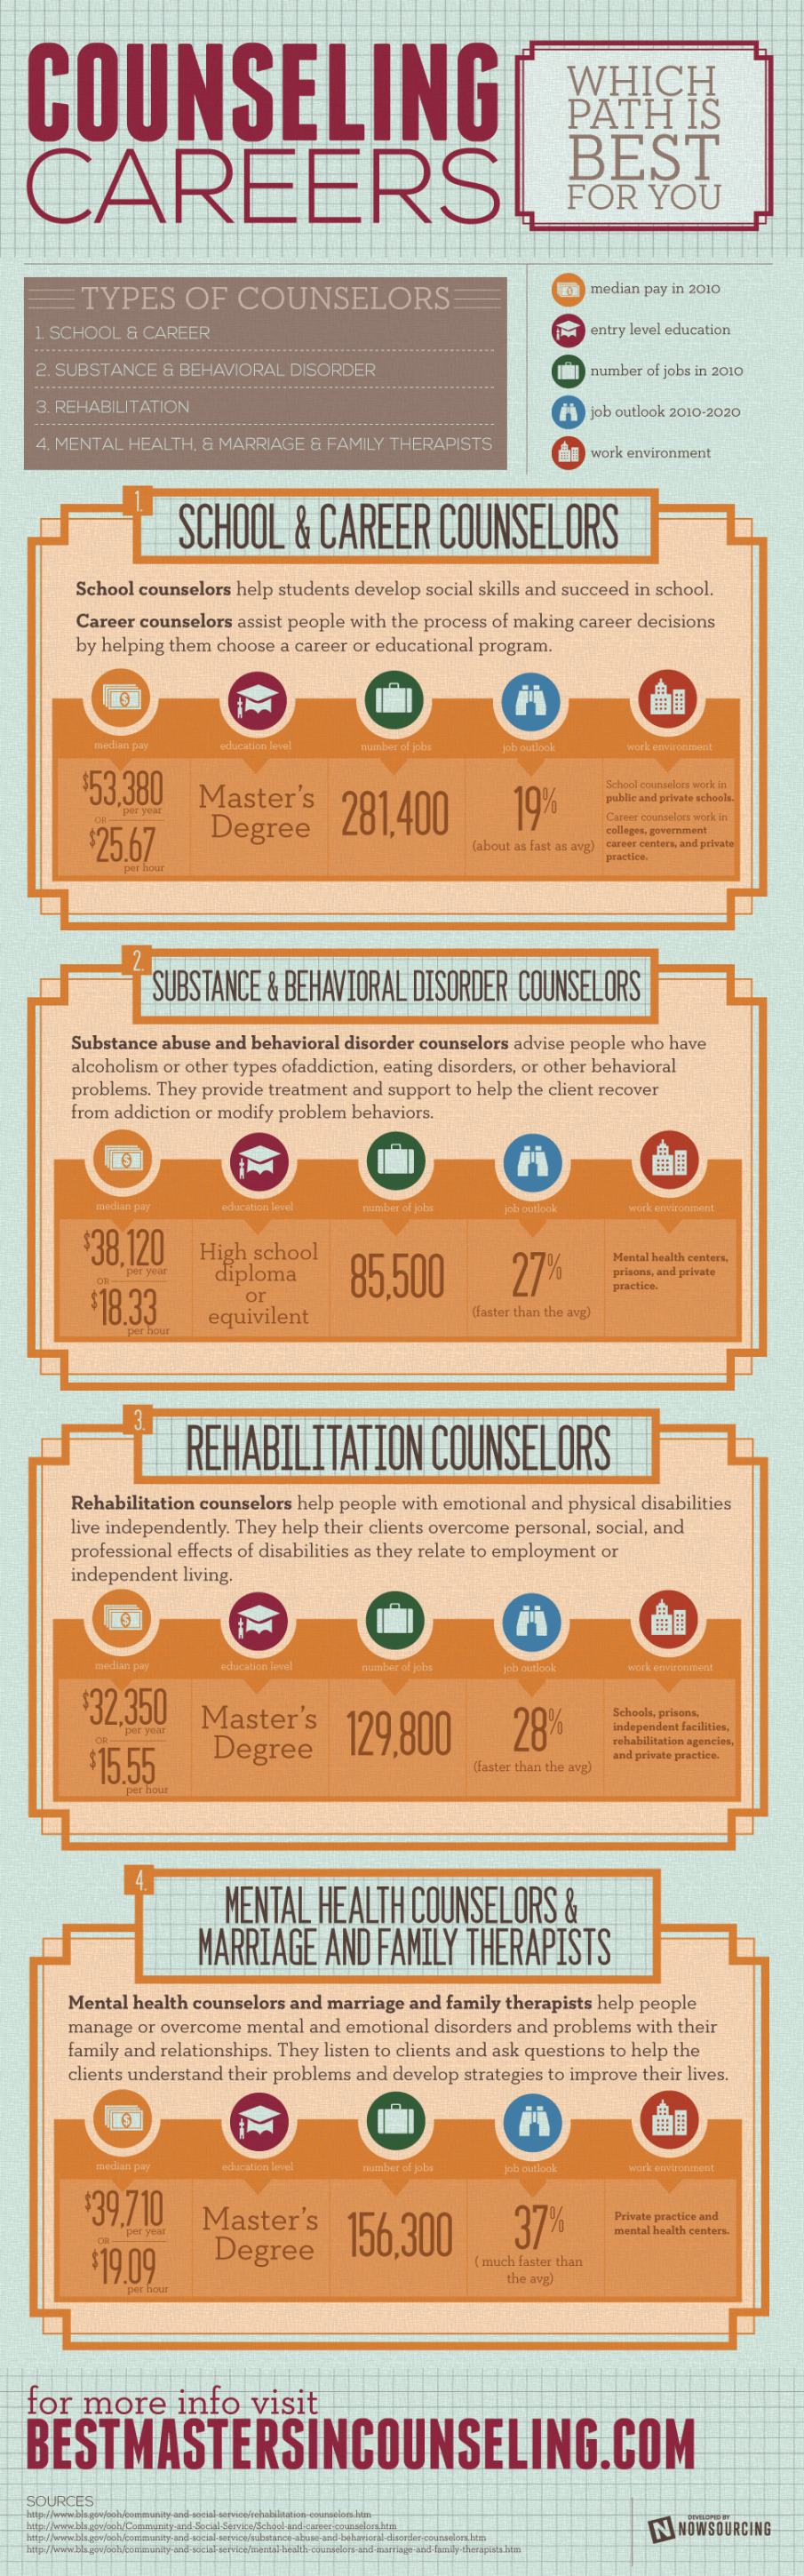 Counseling Careers Which Path Is Best For You Infographic Career